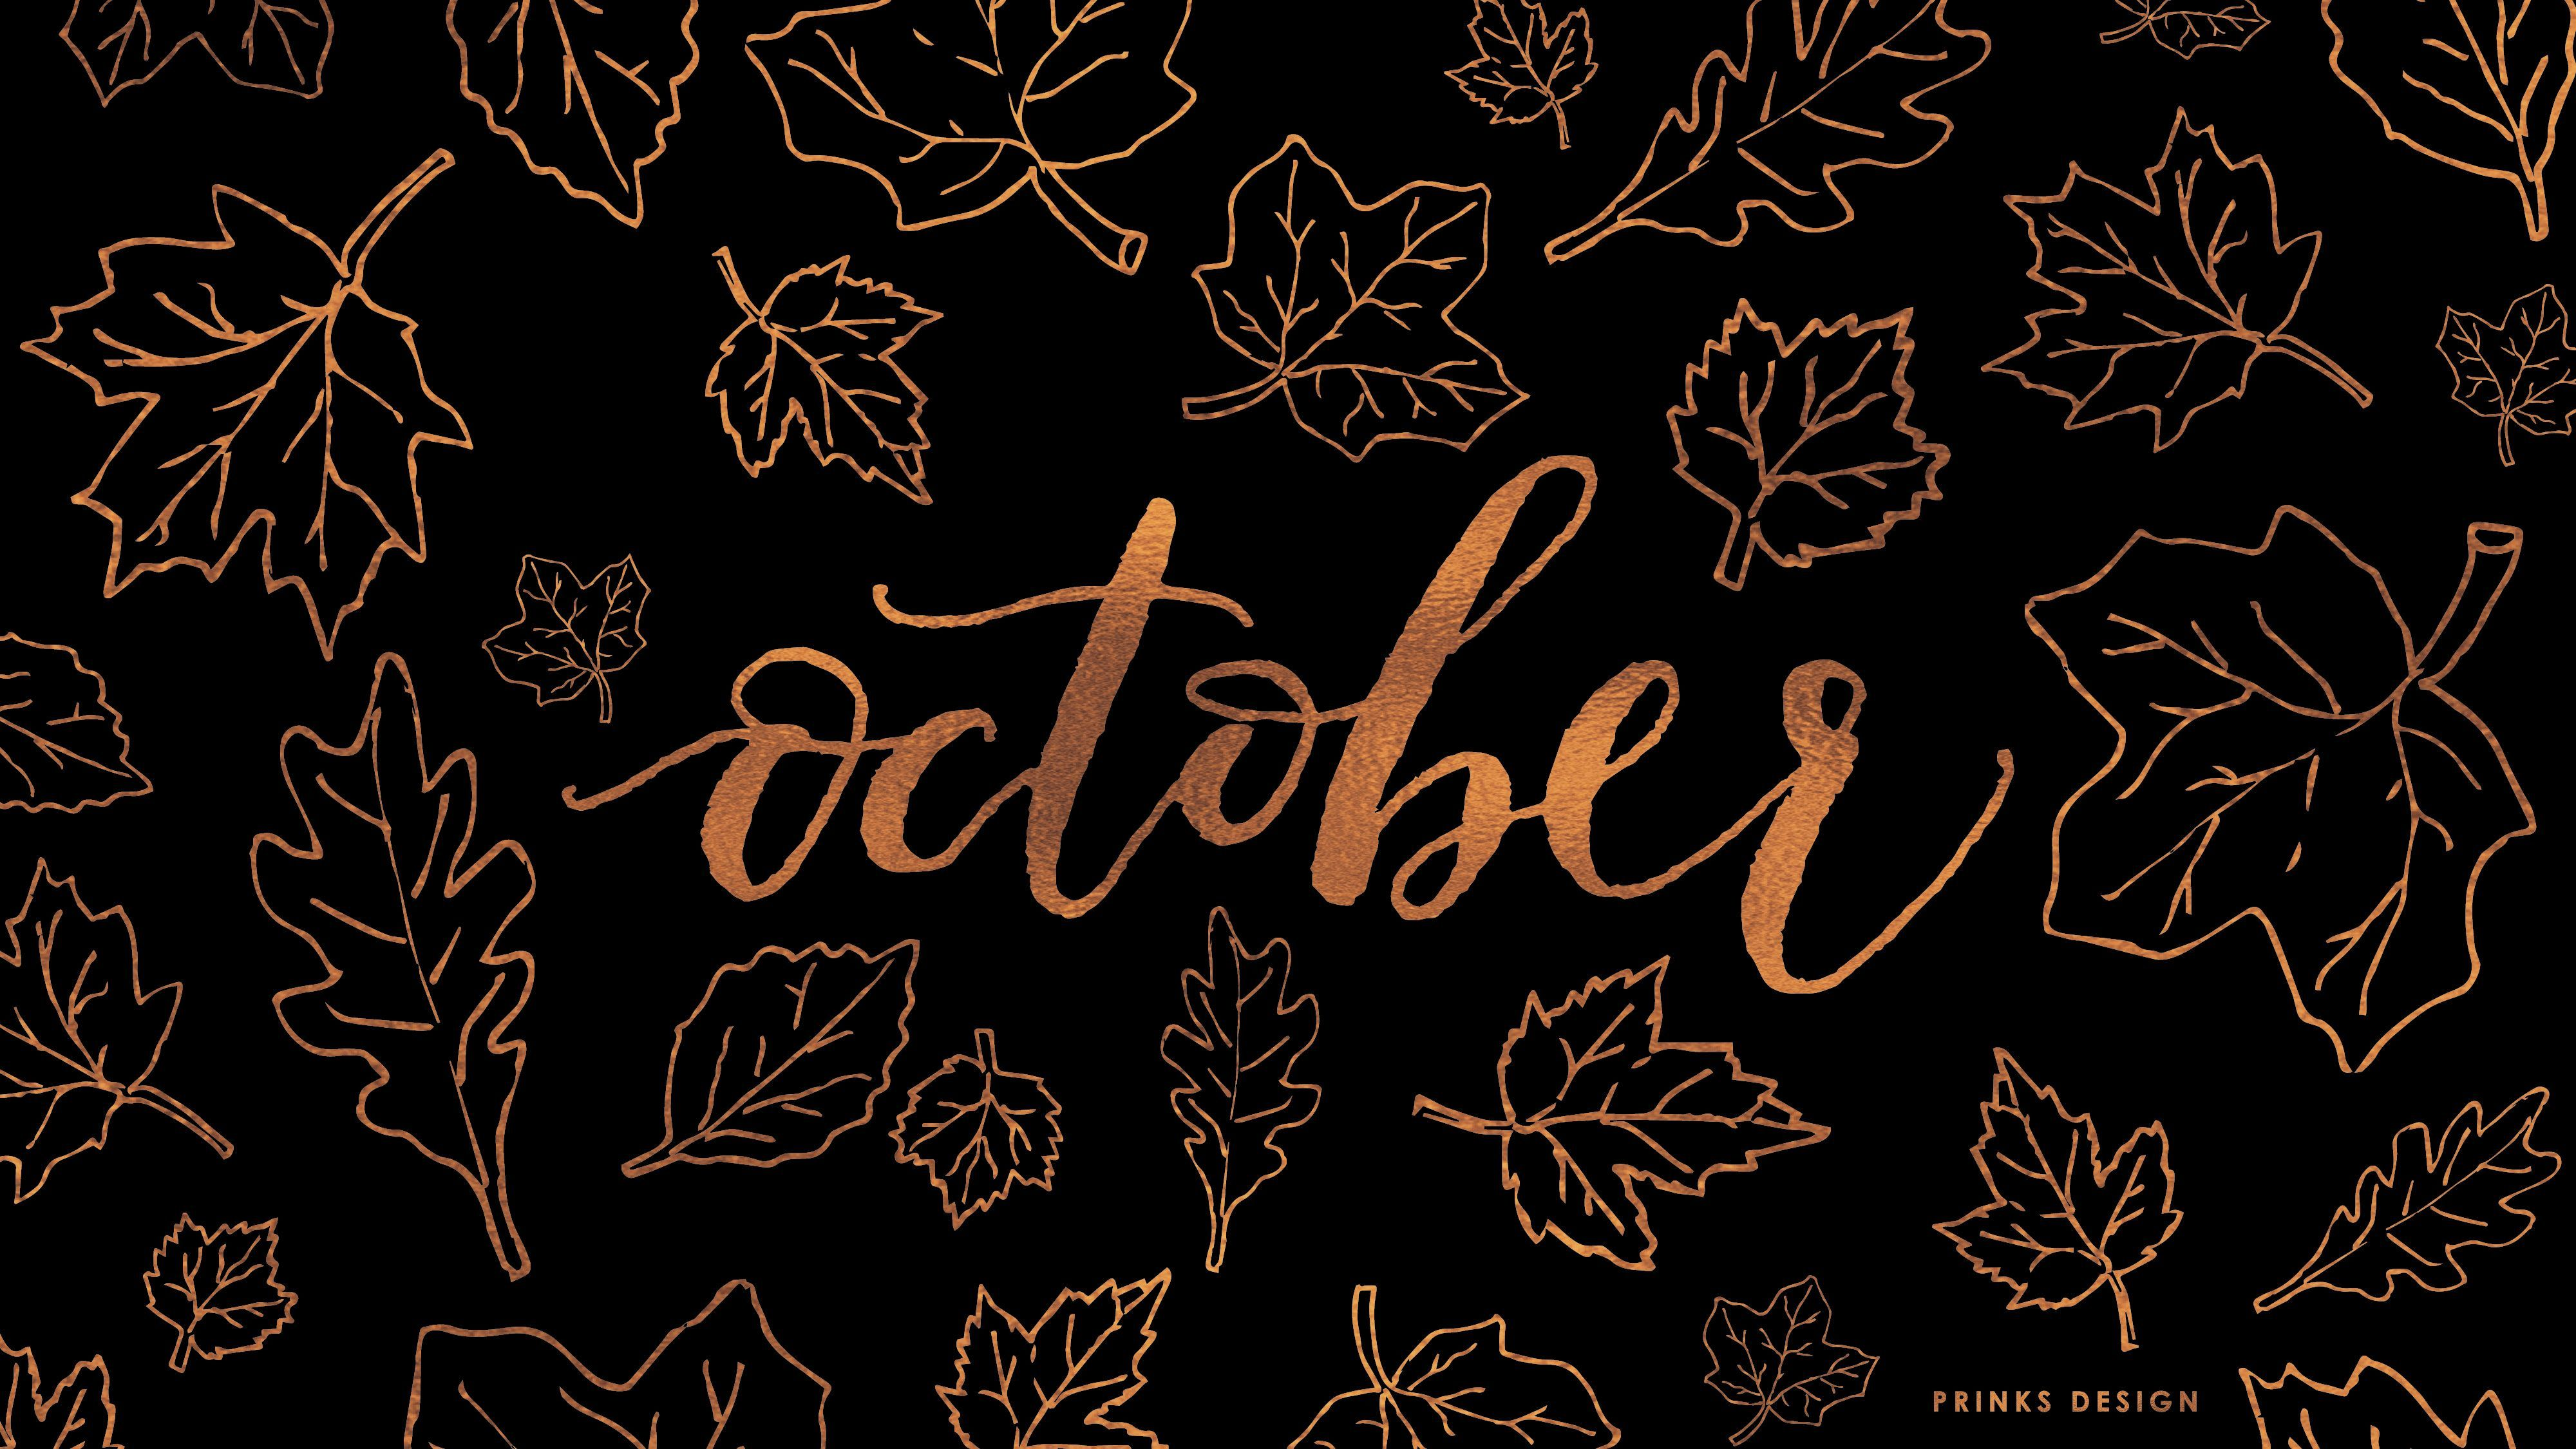 October Wallpaper Octoberwallpaperiphone October Wallpaper October Wallpaper Desktop Wallpaper Fall Halloween Desktop Wallpaper